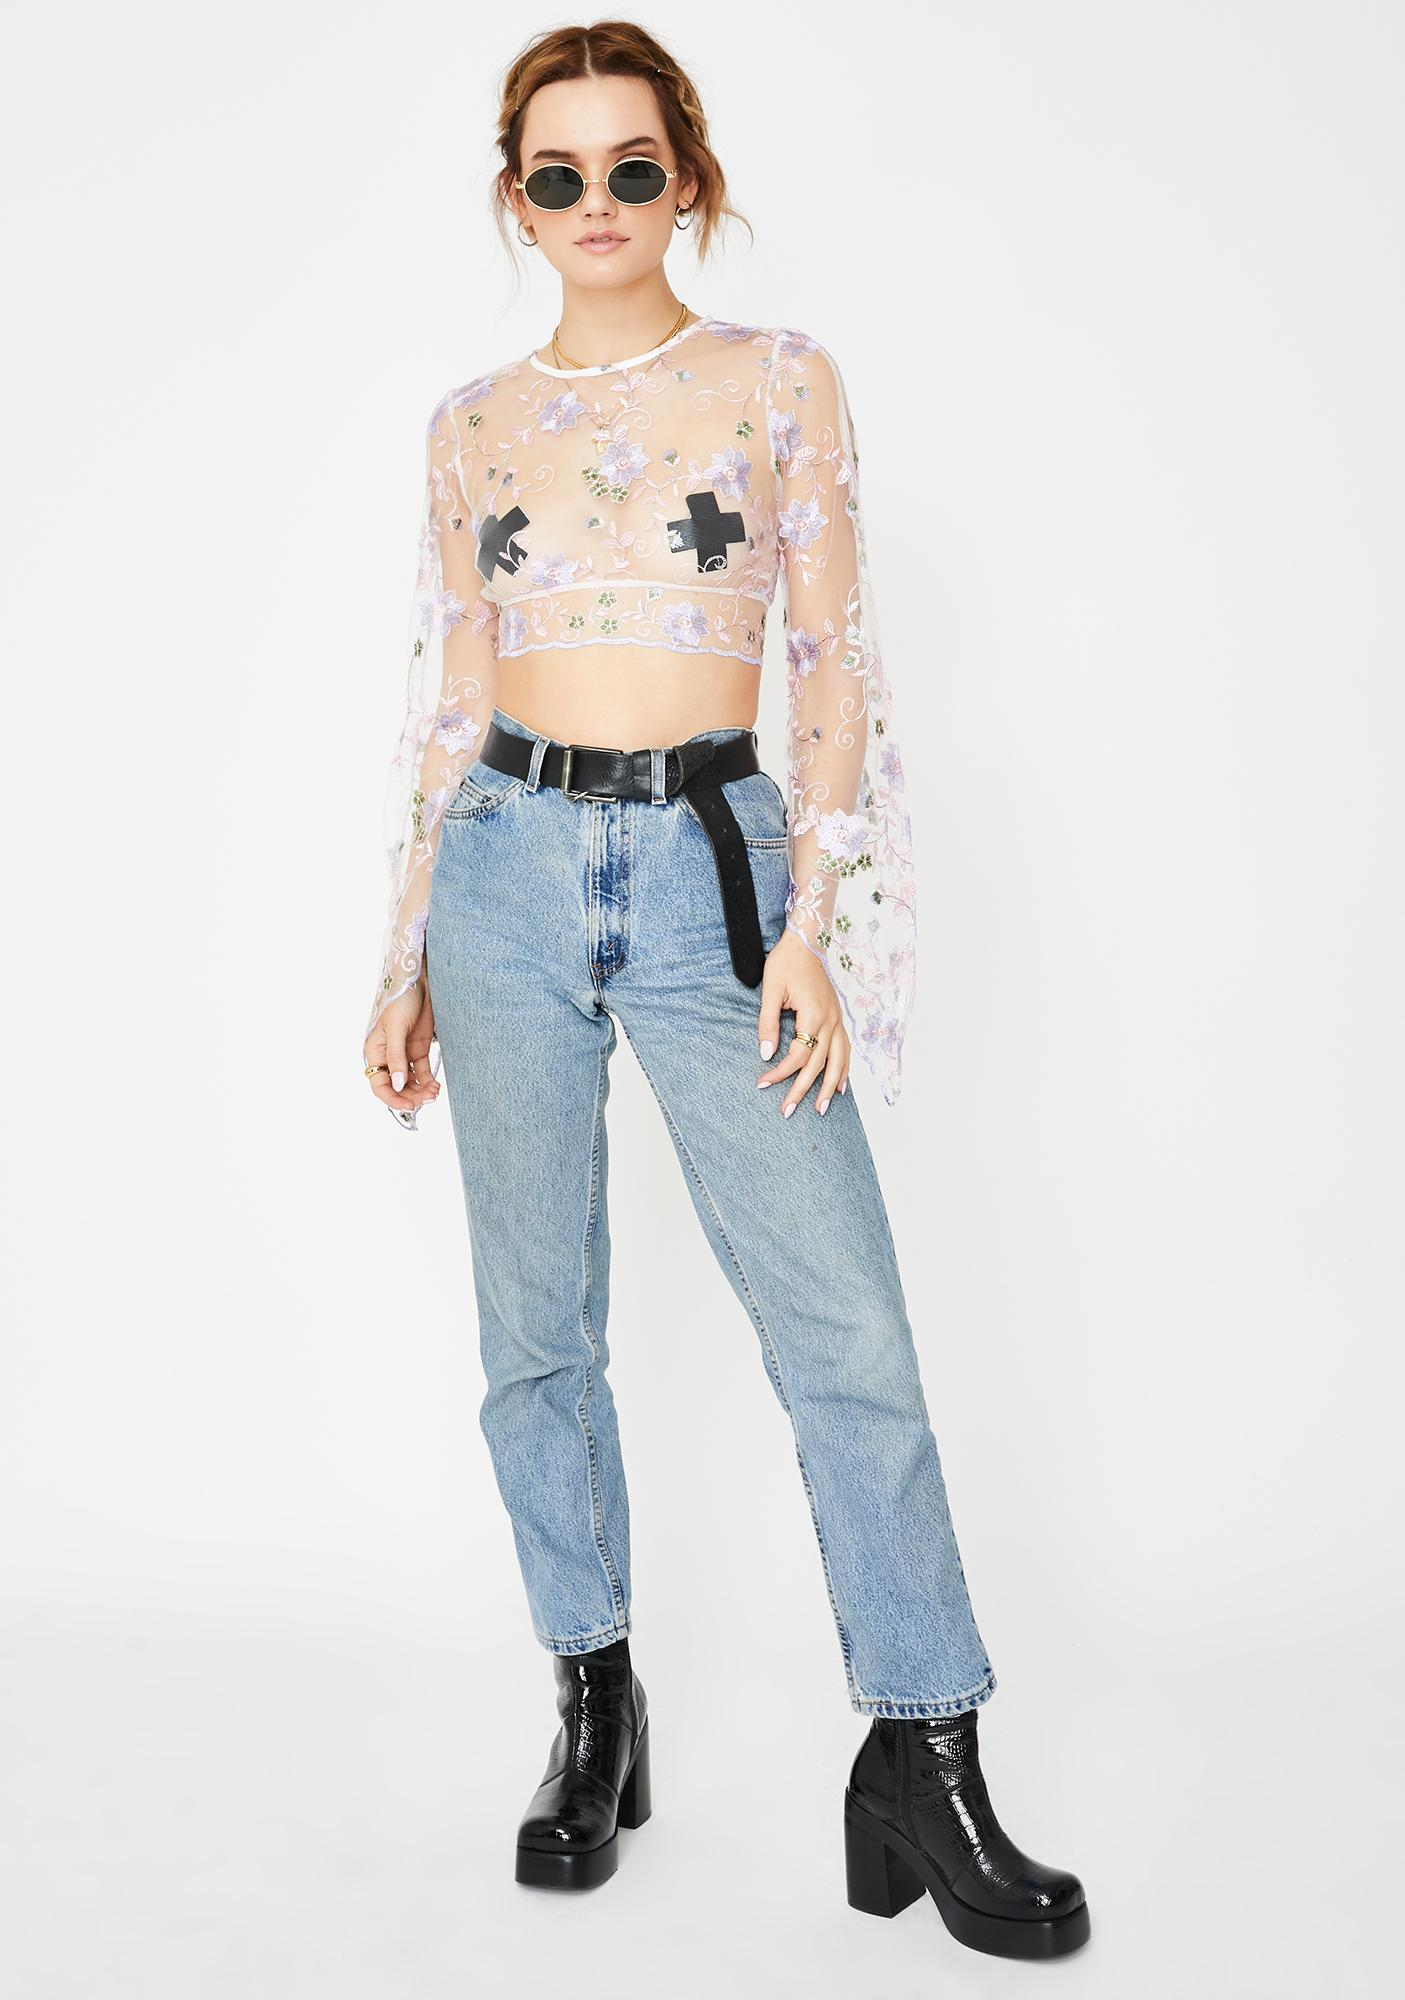 Ebonie N Ivory Embroidered Lace Crop Top